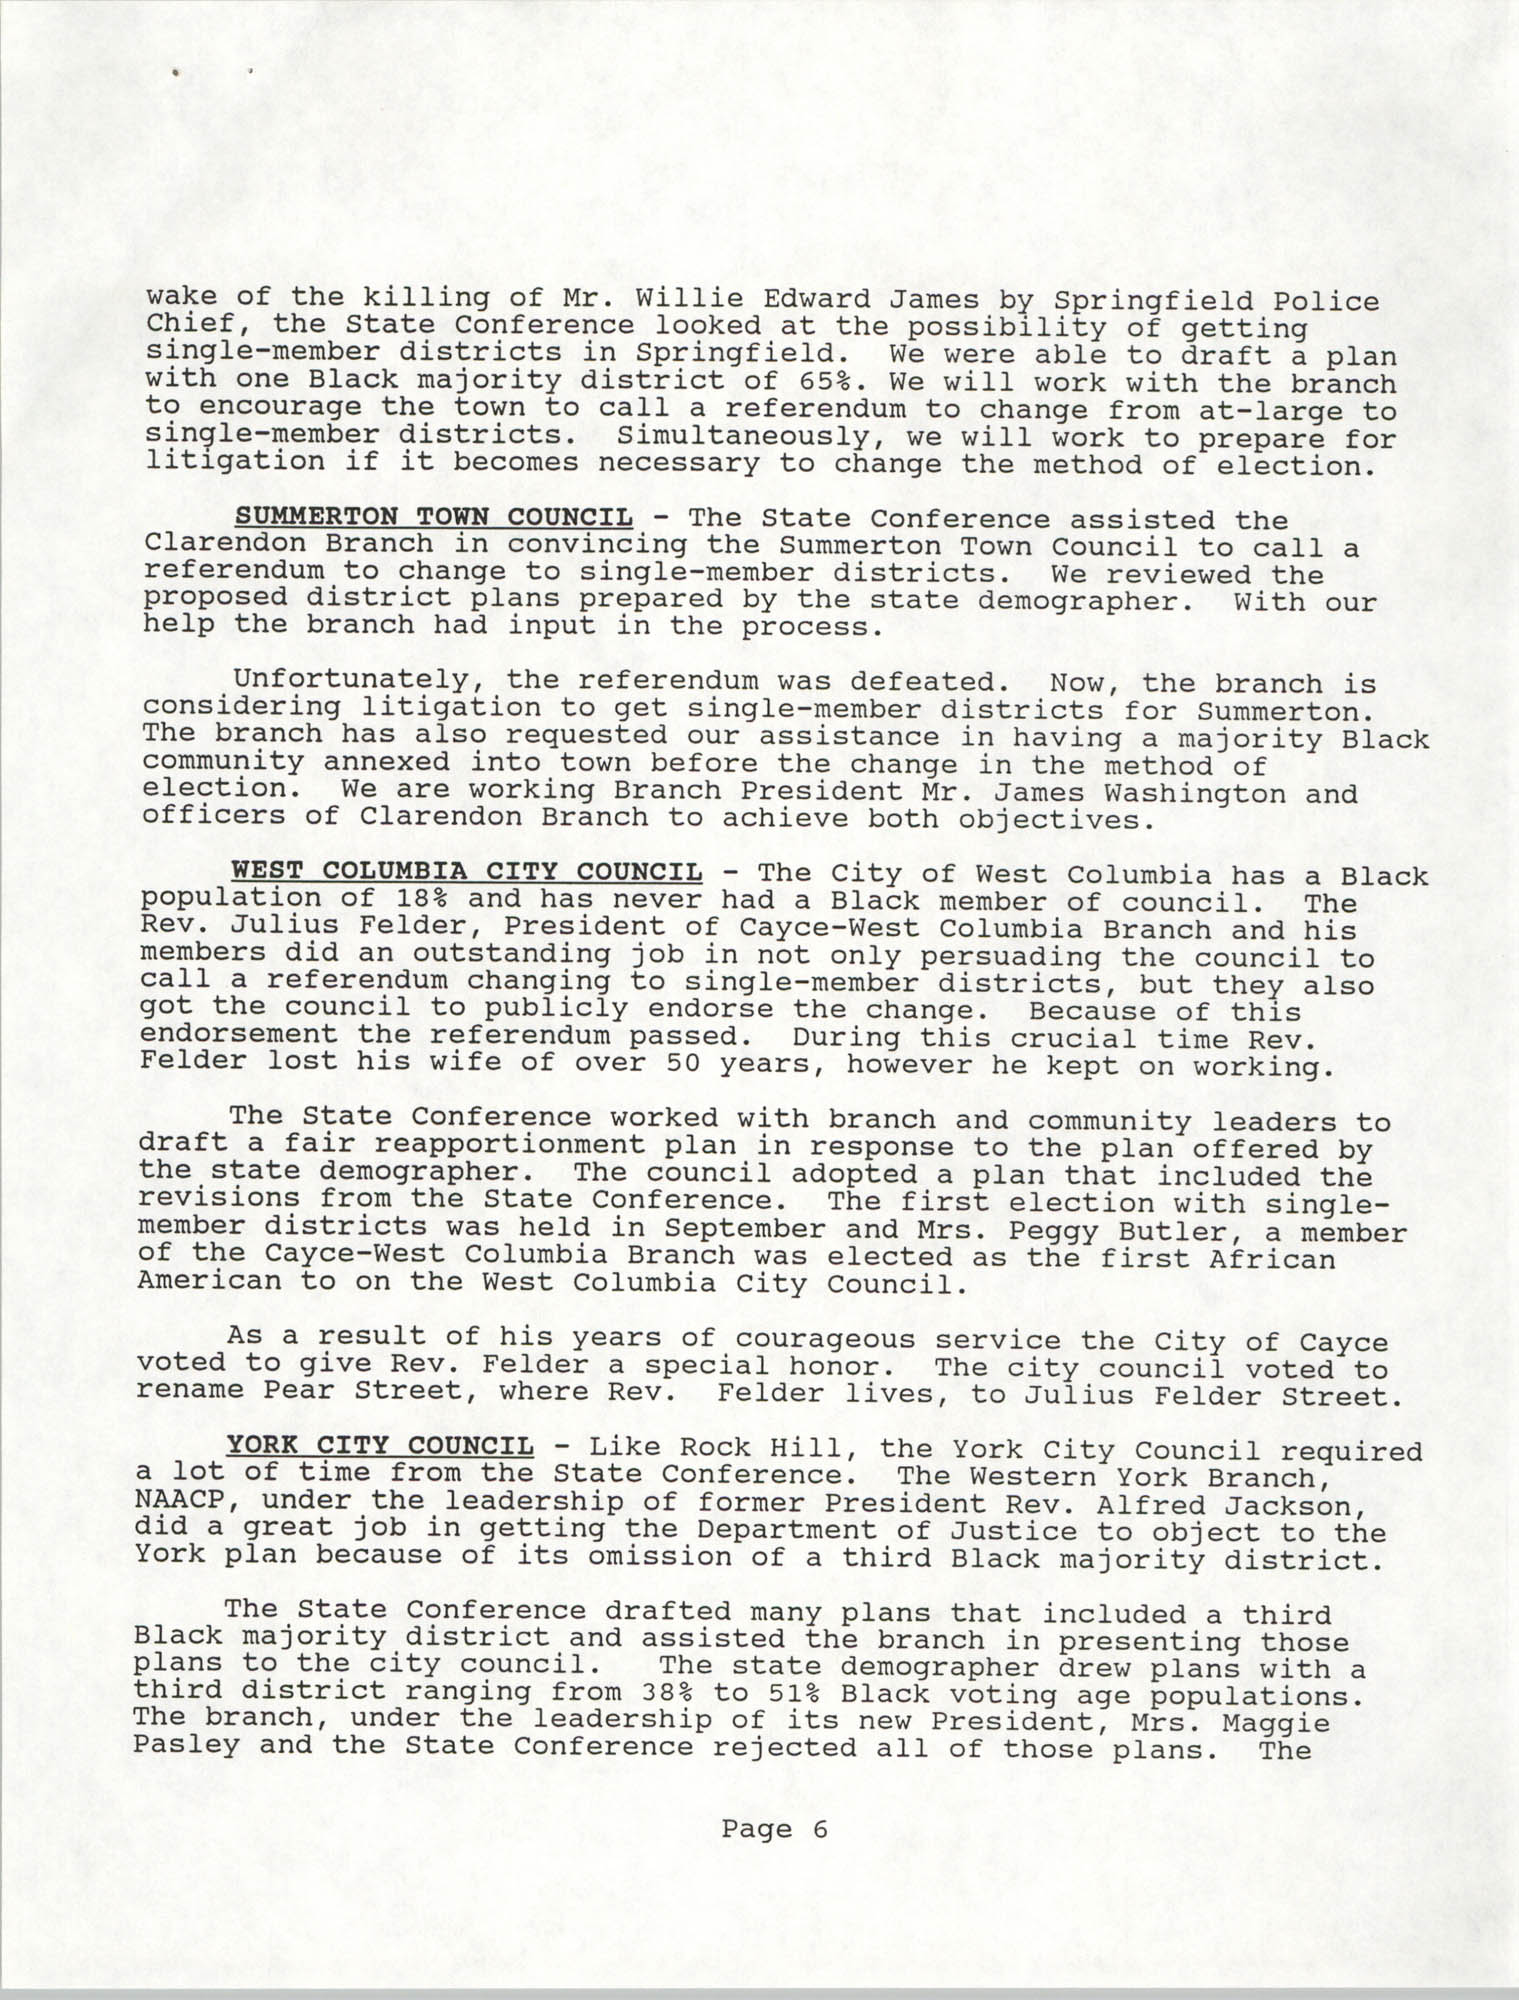 South Carolina Conference of Branches of the NAACP, Annual Report, October 9, 1993, Page 6